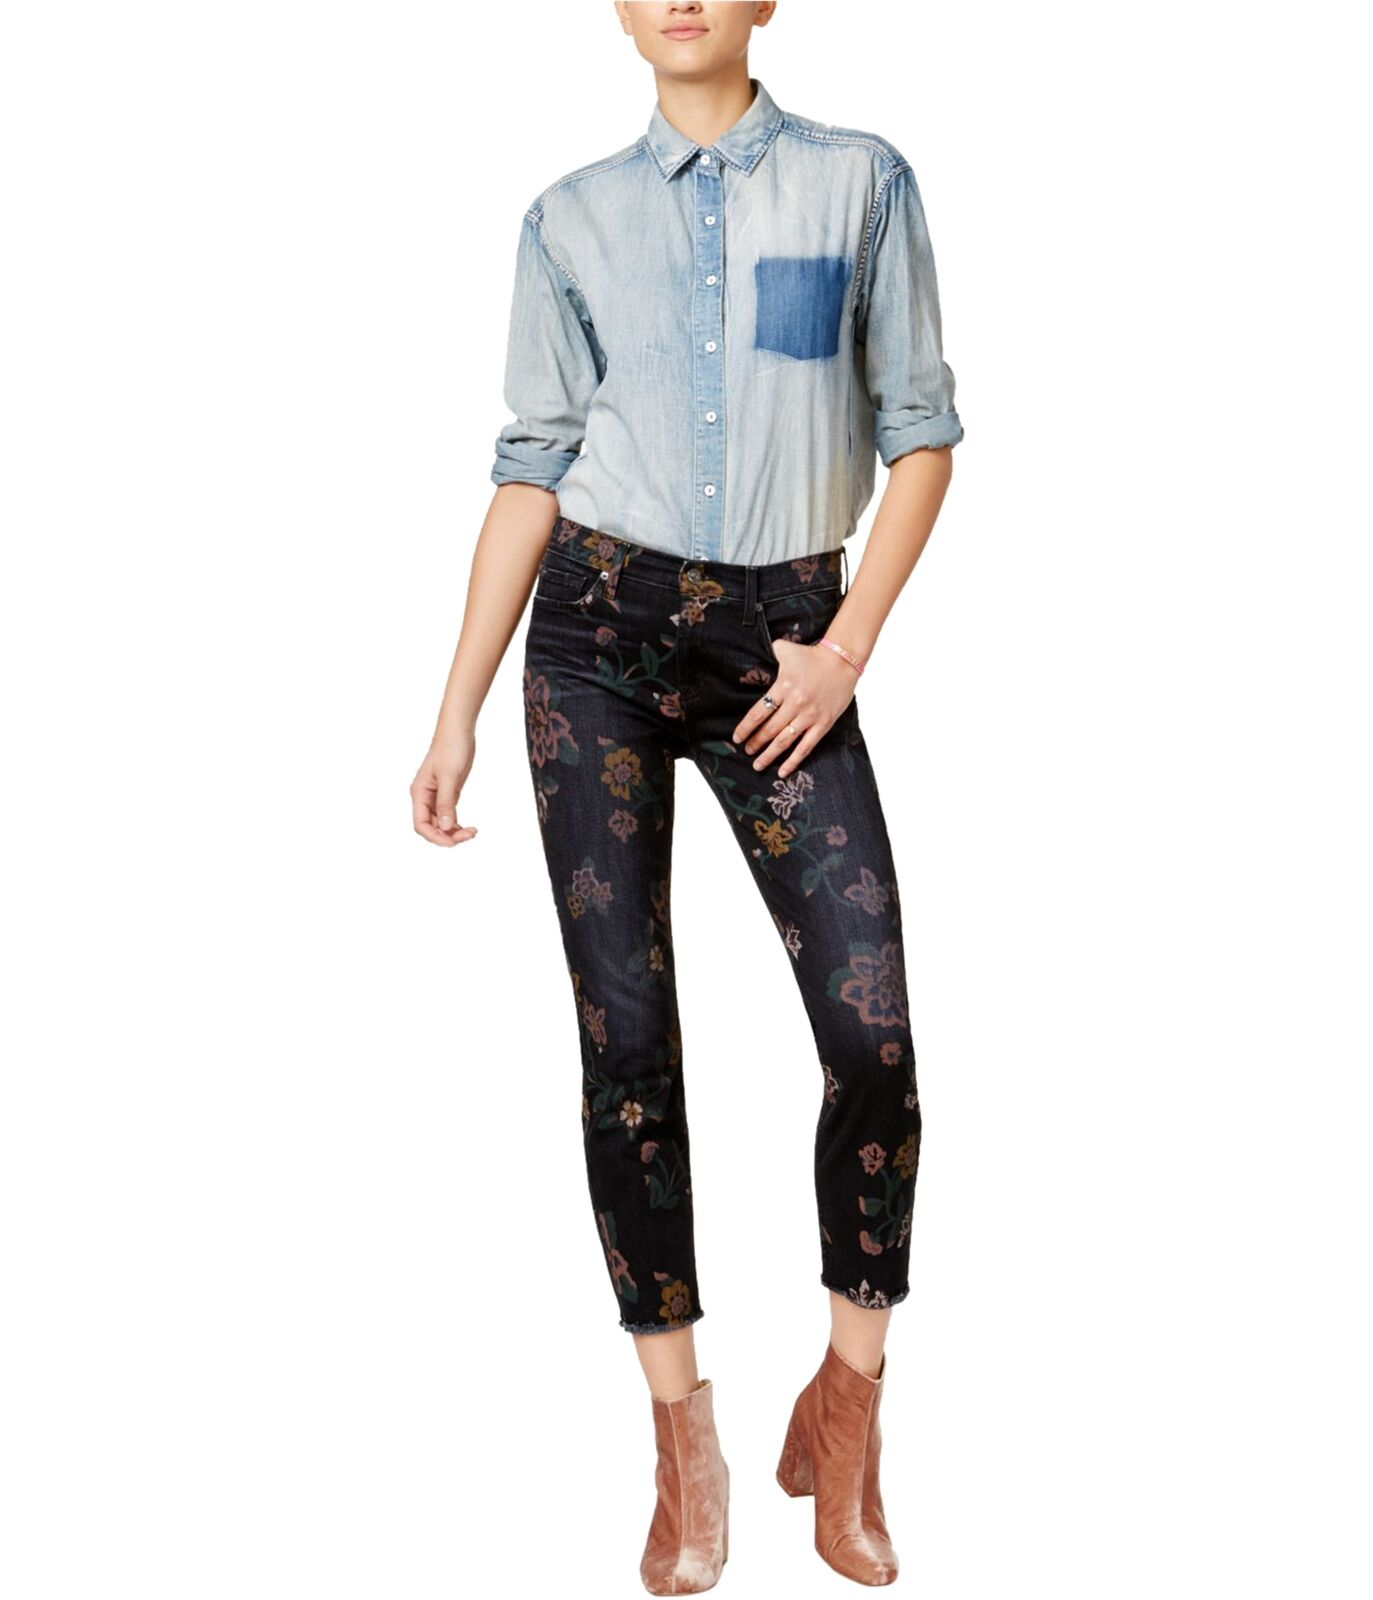 7 For All ManKind Womens Roxanne Skinny Fit Jeans prnr 26x28 - Juniors